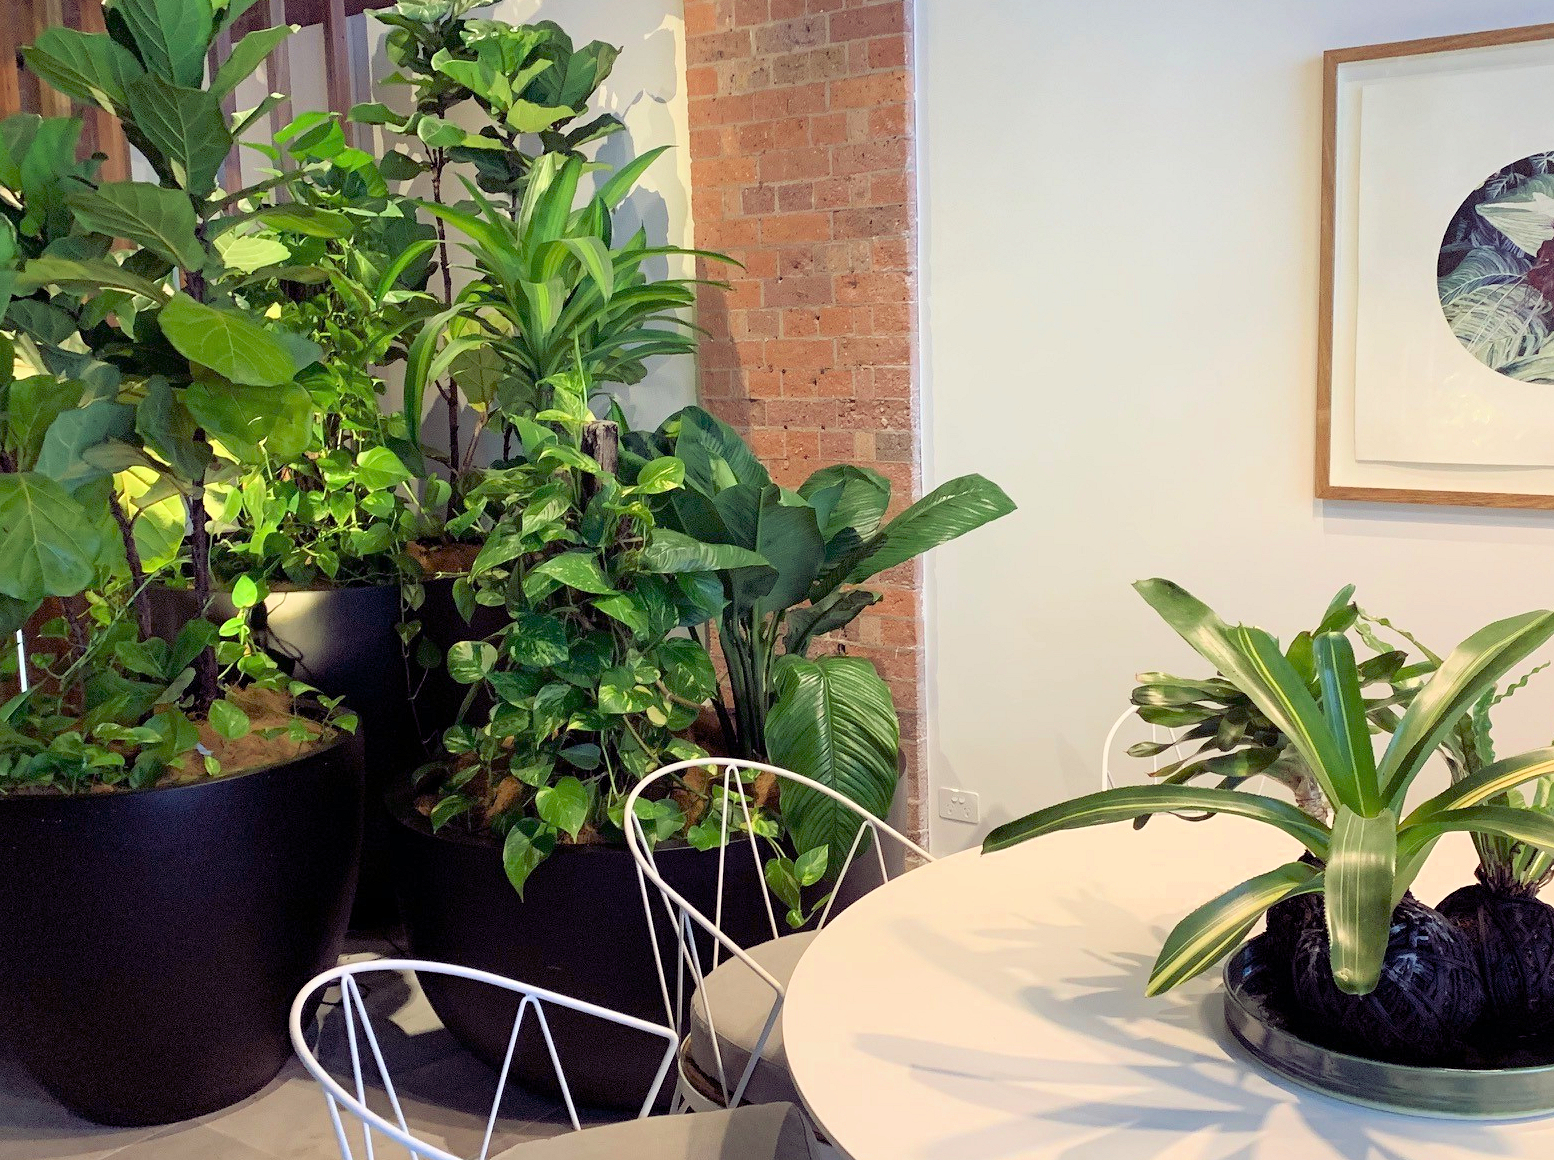 Showing a pothos growing on a totem among other lush plants.